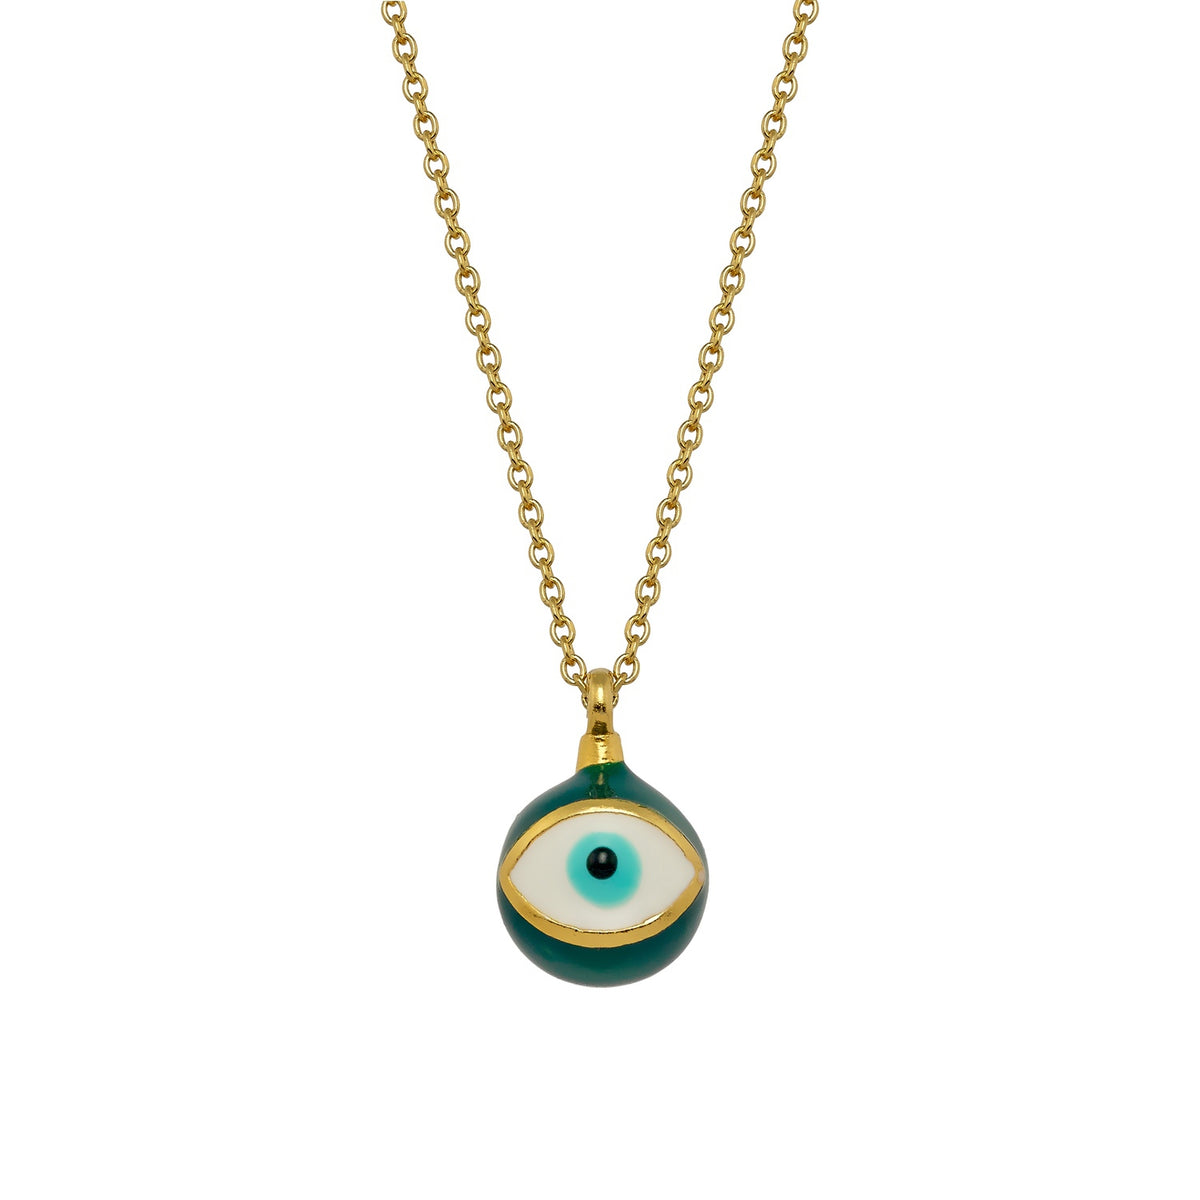 MATI | Sphere Necklace | Green Enamel | 18K Gold Plated 925 Silver